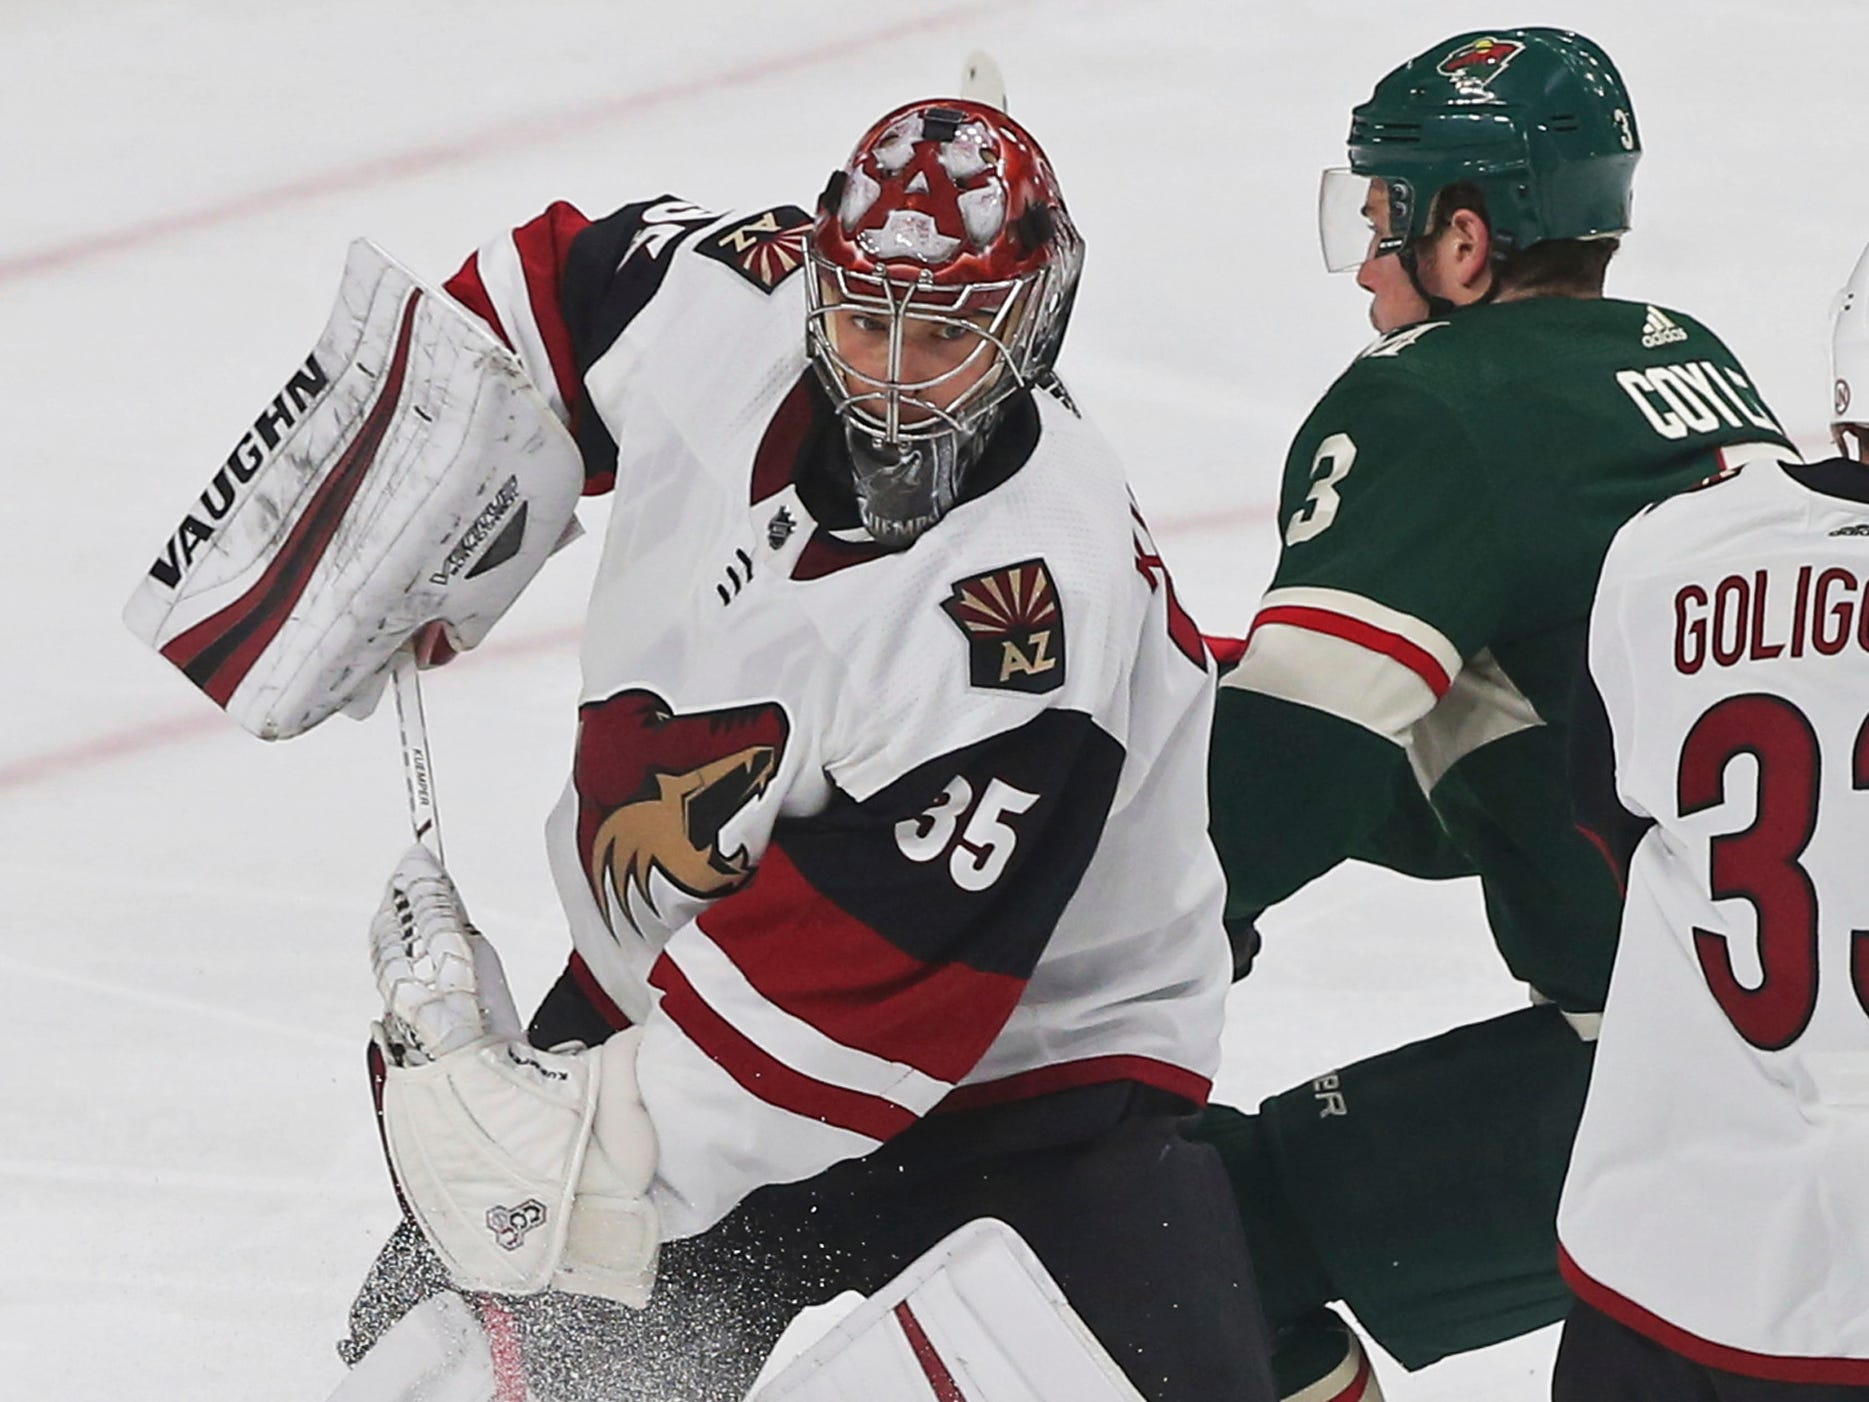 Arizona Coyotes' goalie Darcy Kuemper, left, leaves the net to clear a puck away from Minnesota Wild's Charlie Coyle in the first period of an NHL hockey game Tuesday, Oct. 16, 2018, in St. Paul, Minn.